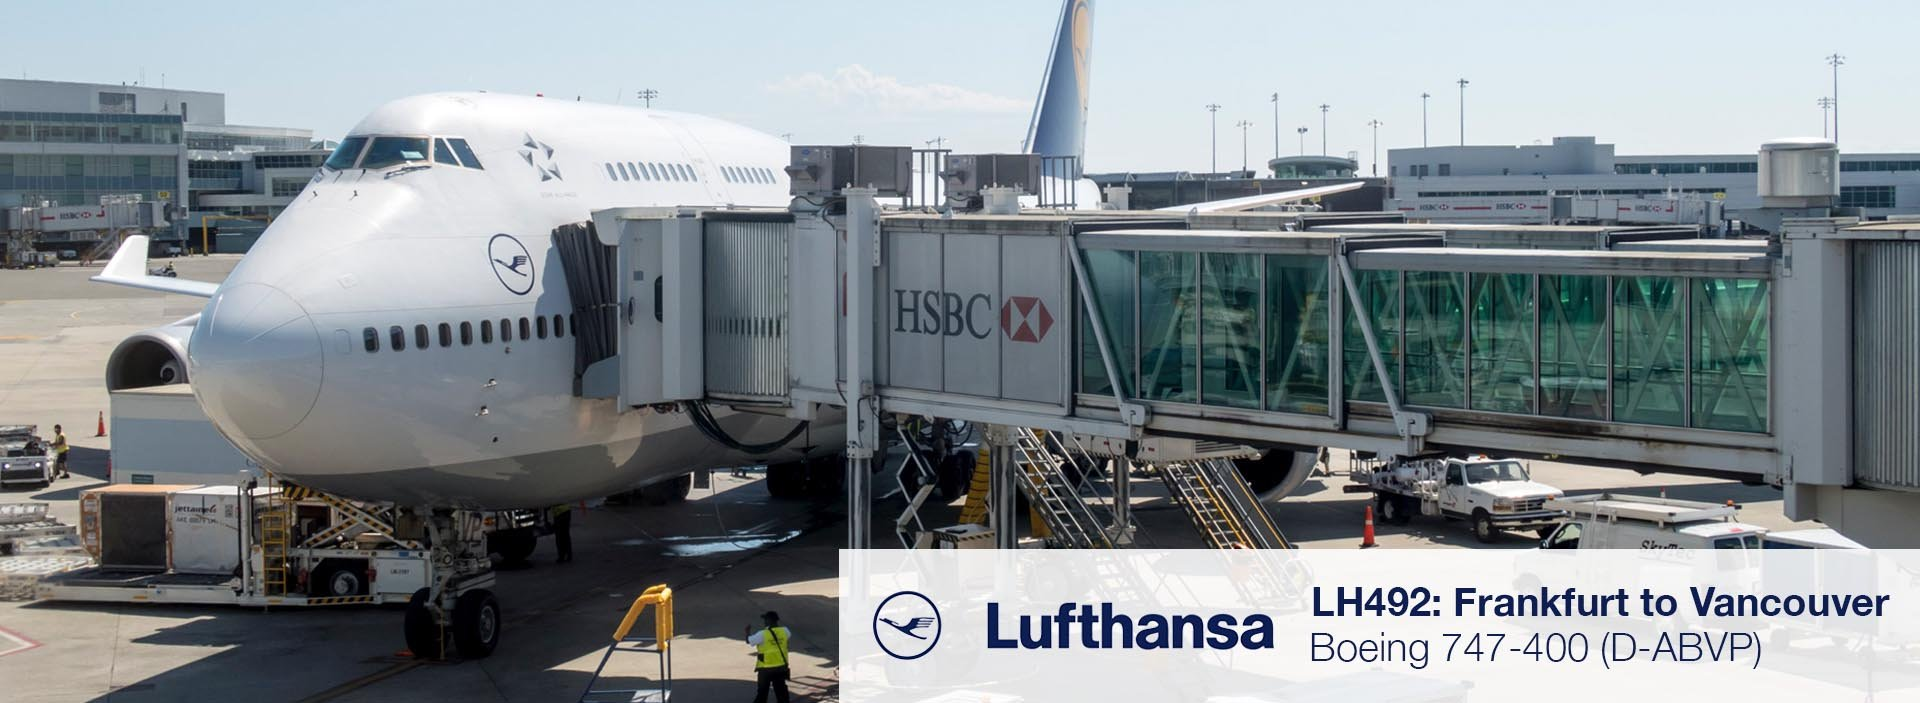 Flight Review: Lufthansa 747-400 Economy Class from Frankfurt to Vancouver